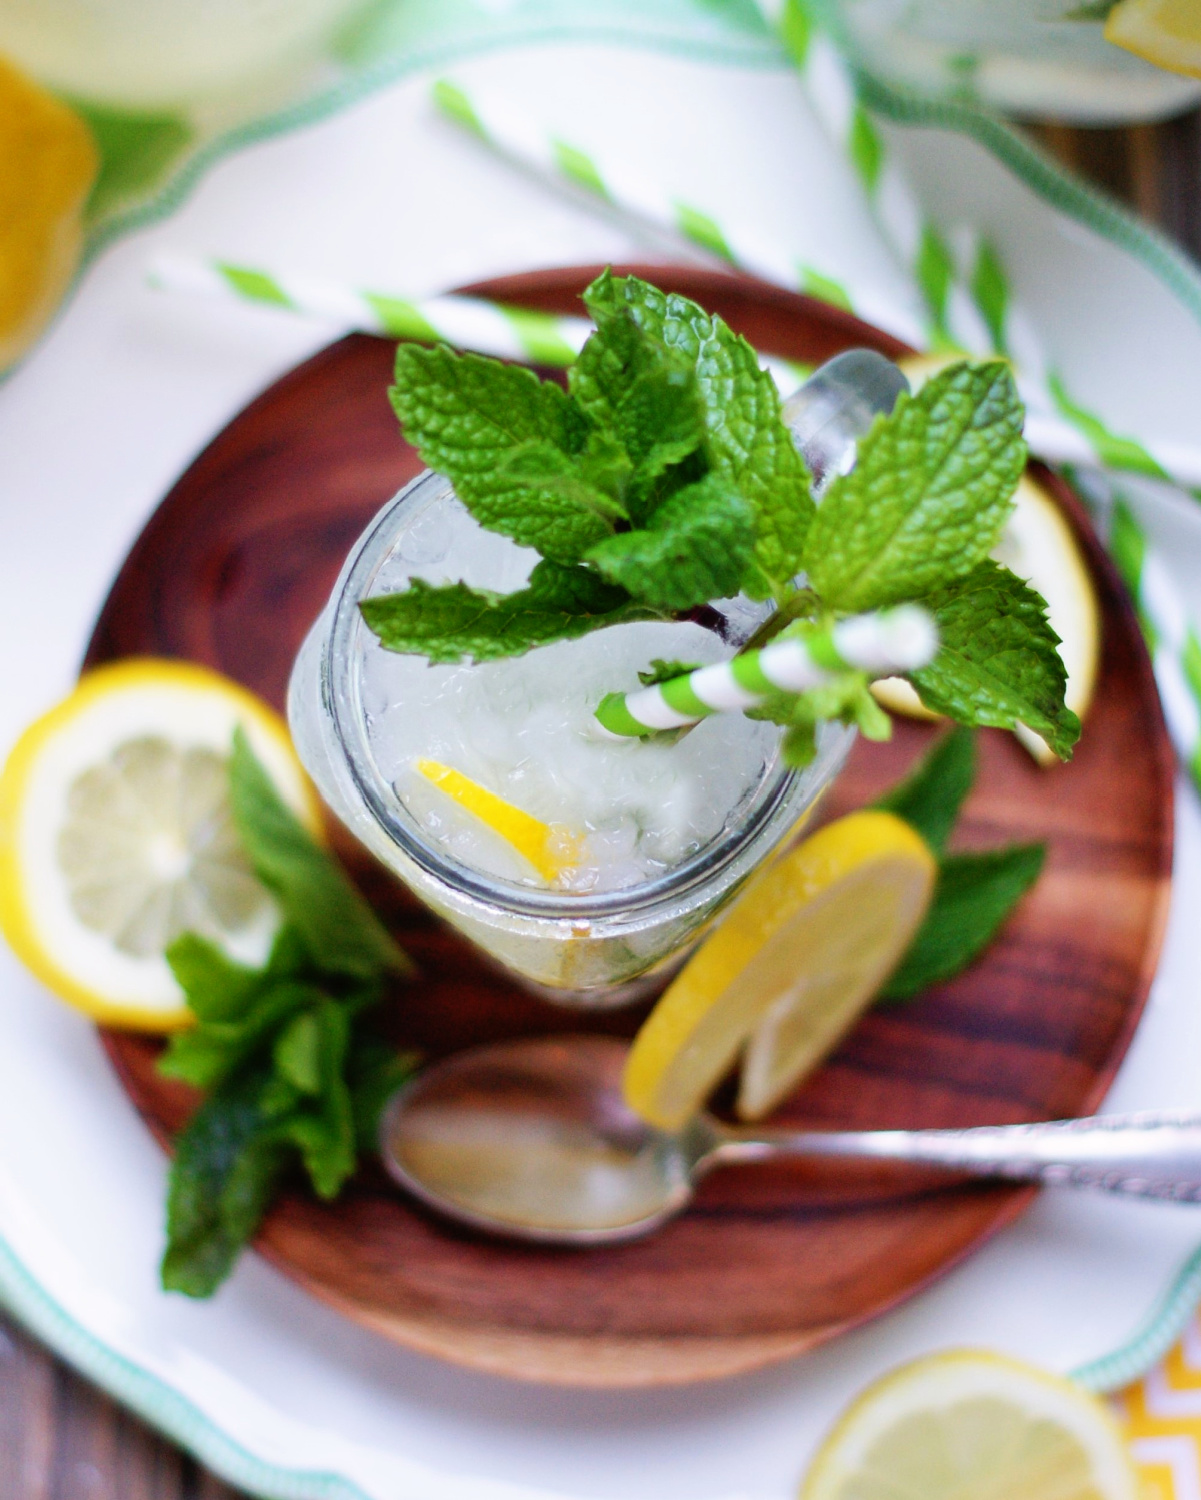 Overhead view of Fresh Mint Lemonade to show garnish and color.